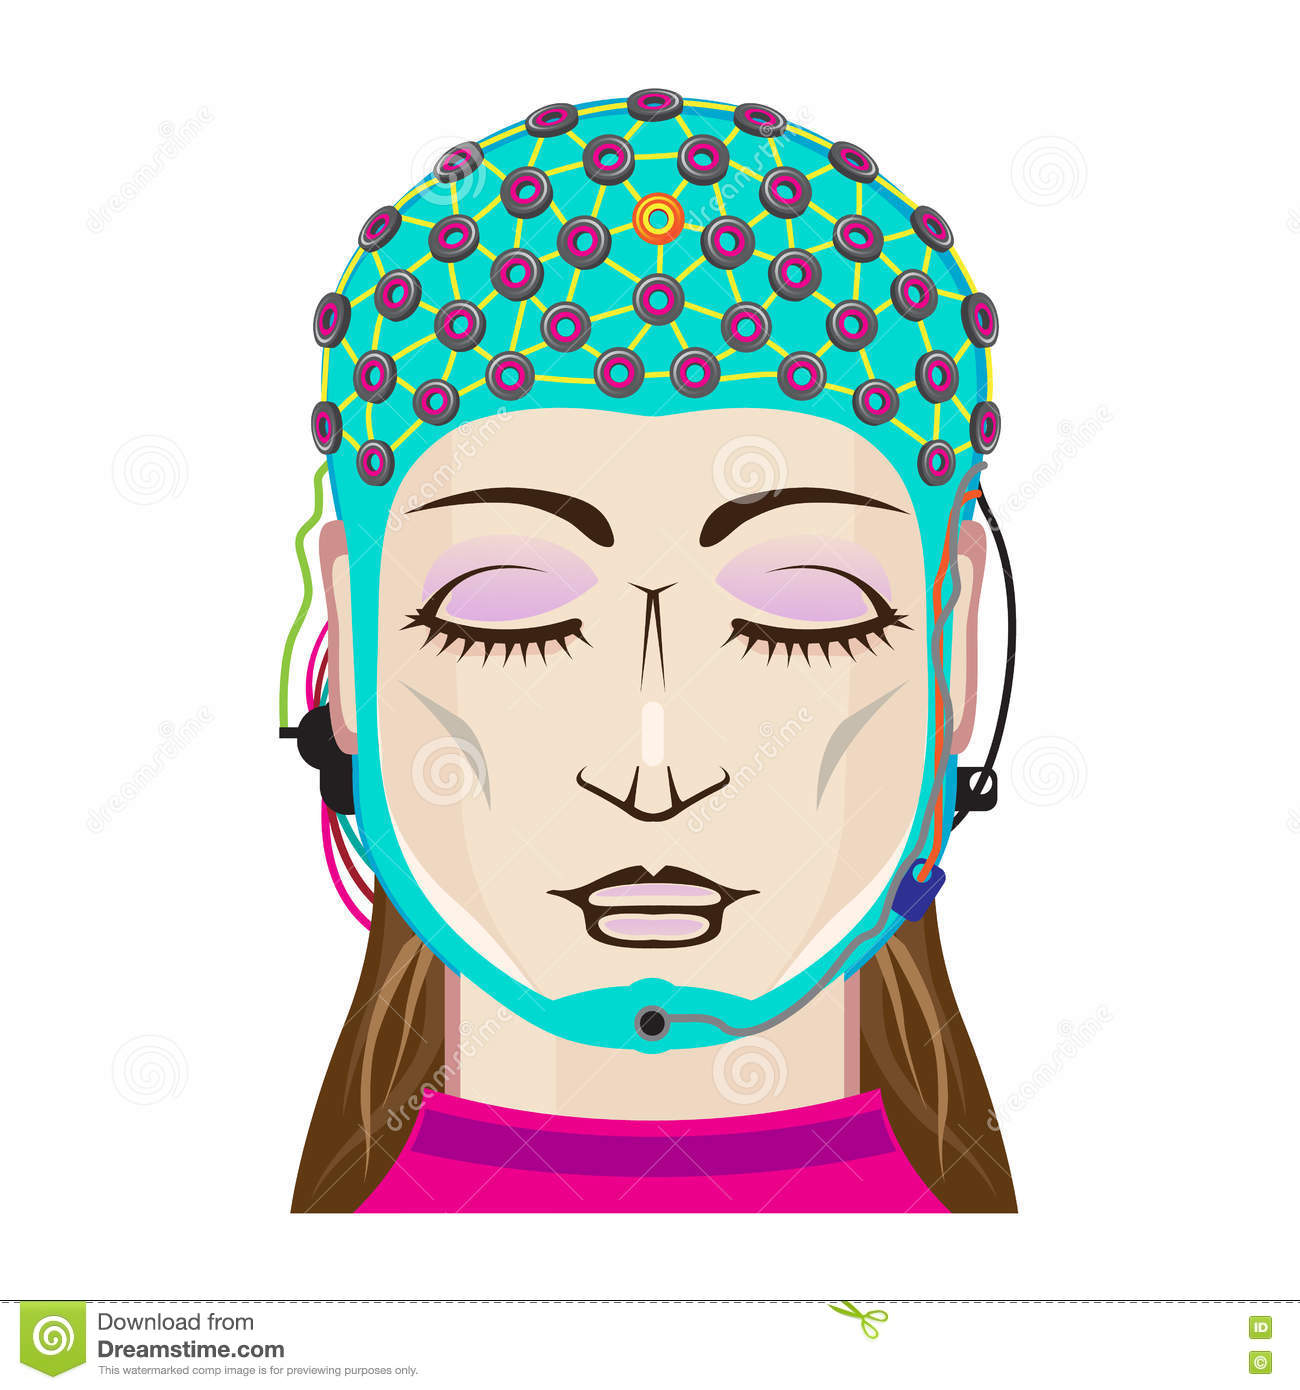 Eeg Stock Illustrations.